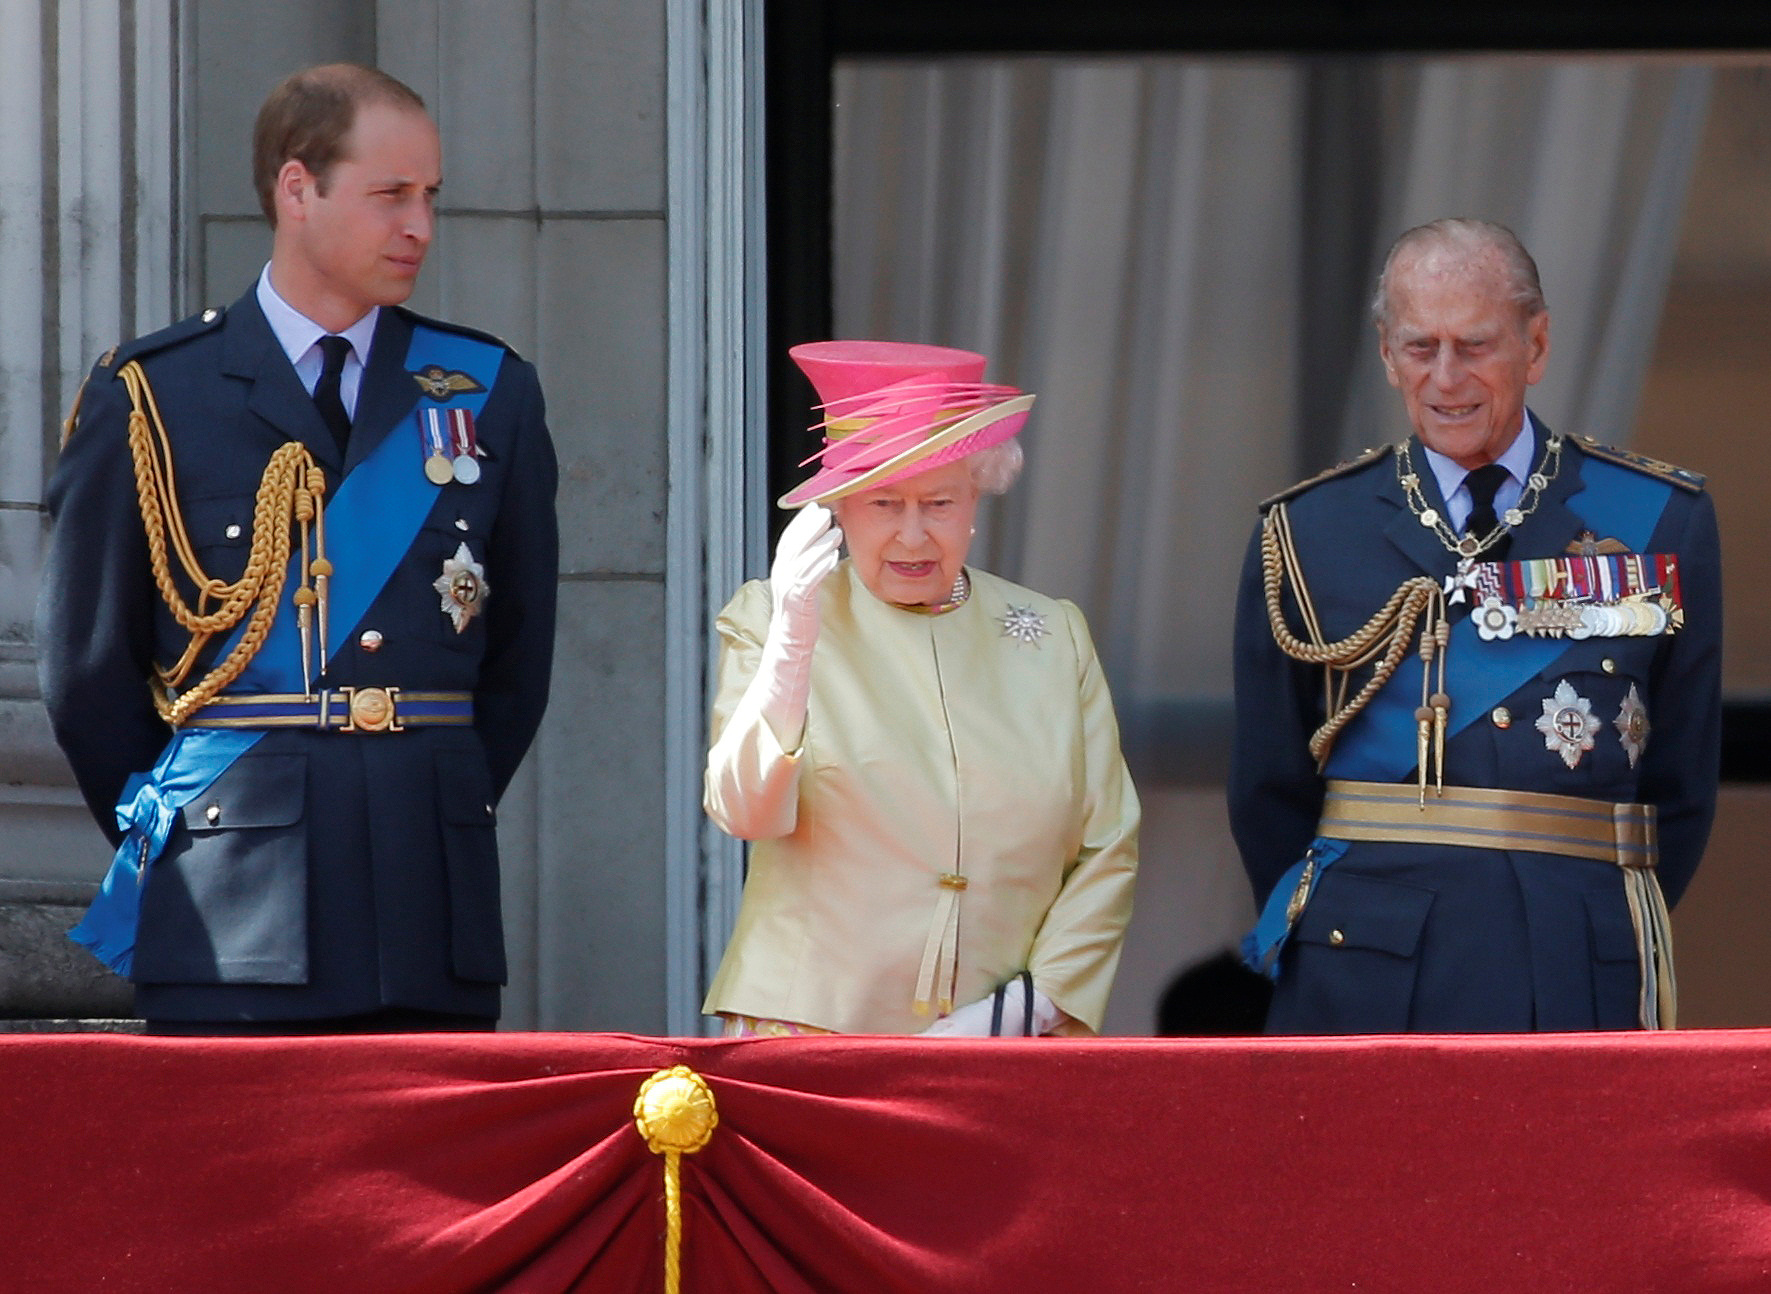 Britain's Queen Elizabeth waves as she stands with Prince William (L) and Prince Philip as they prepare to view a RAF flypast to mark the 75th anniversary of the Battle of Britain, from the balcony of Buckingham Palace in London, Britain July 10, 2015. REUTERS/Peter Nicholls/File Photo